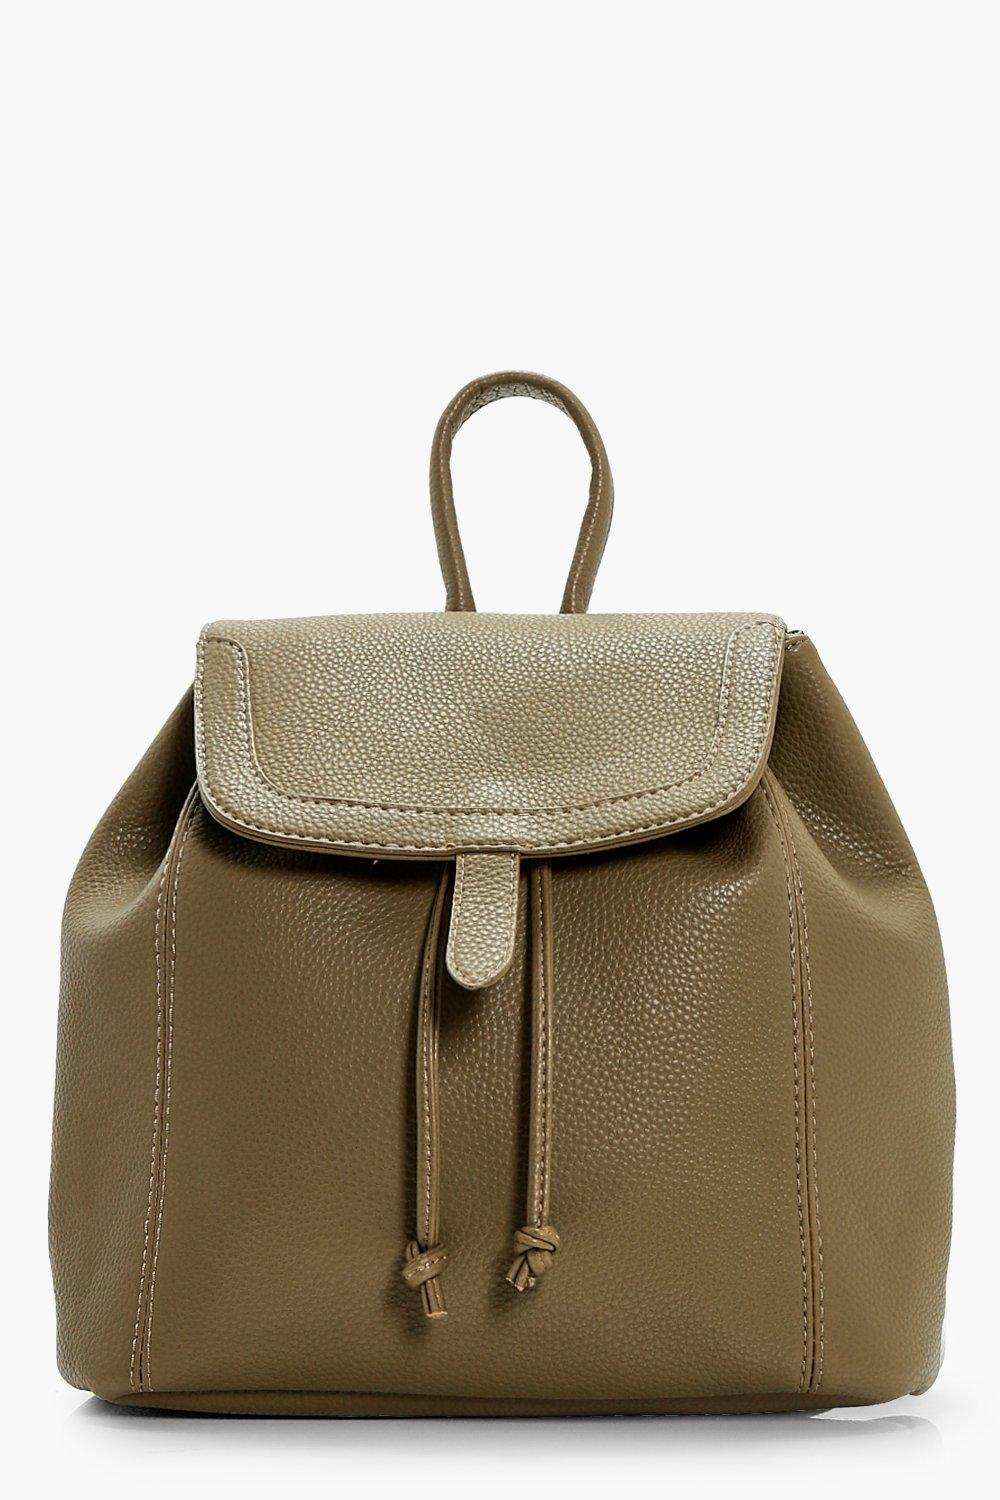 Entry Painted Edge Rucksack - khaki - Kerry Entry